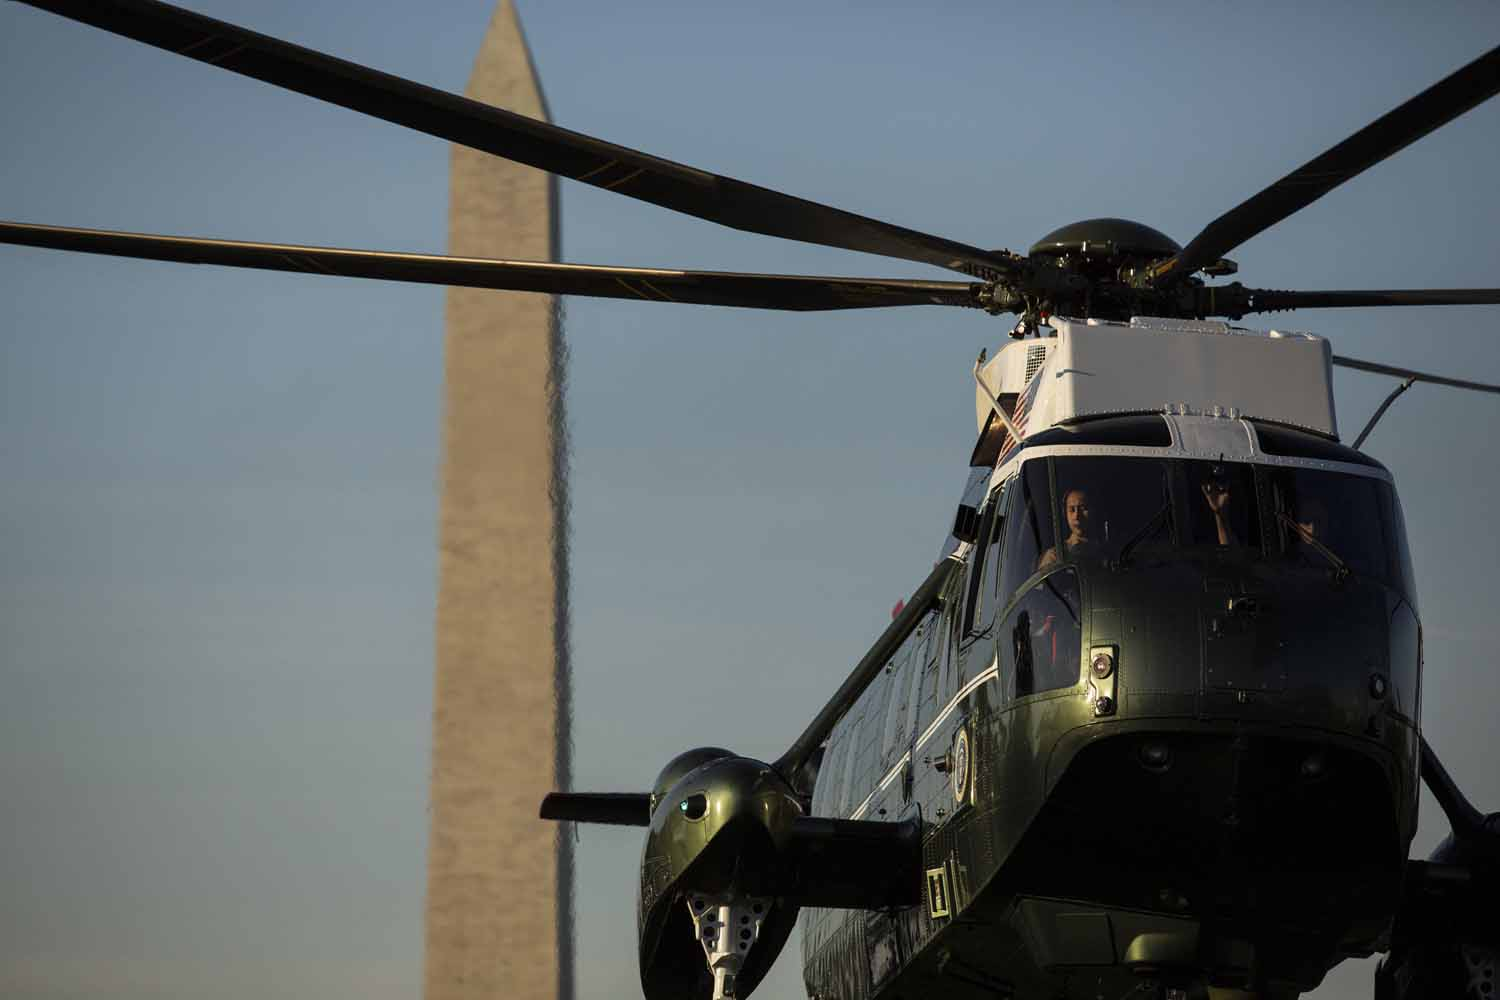 May 26, 2014. US - Marine One, with United States President Barack Obama onboard, prepares to land on the South Lawn at the White House.